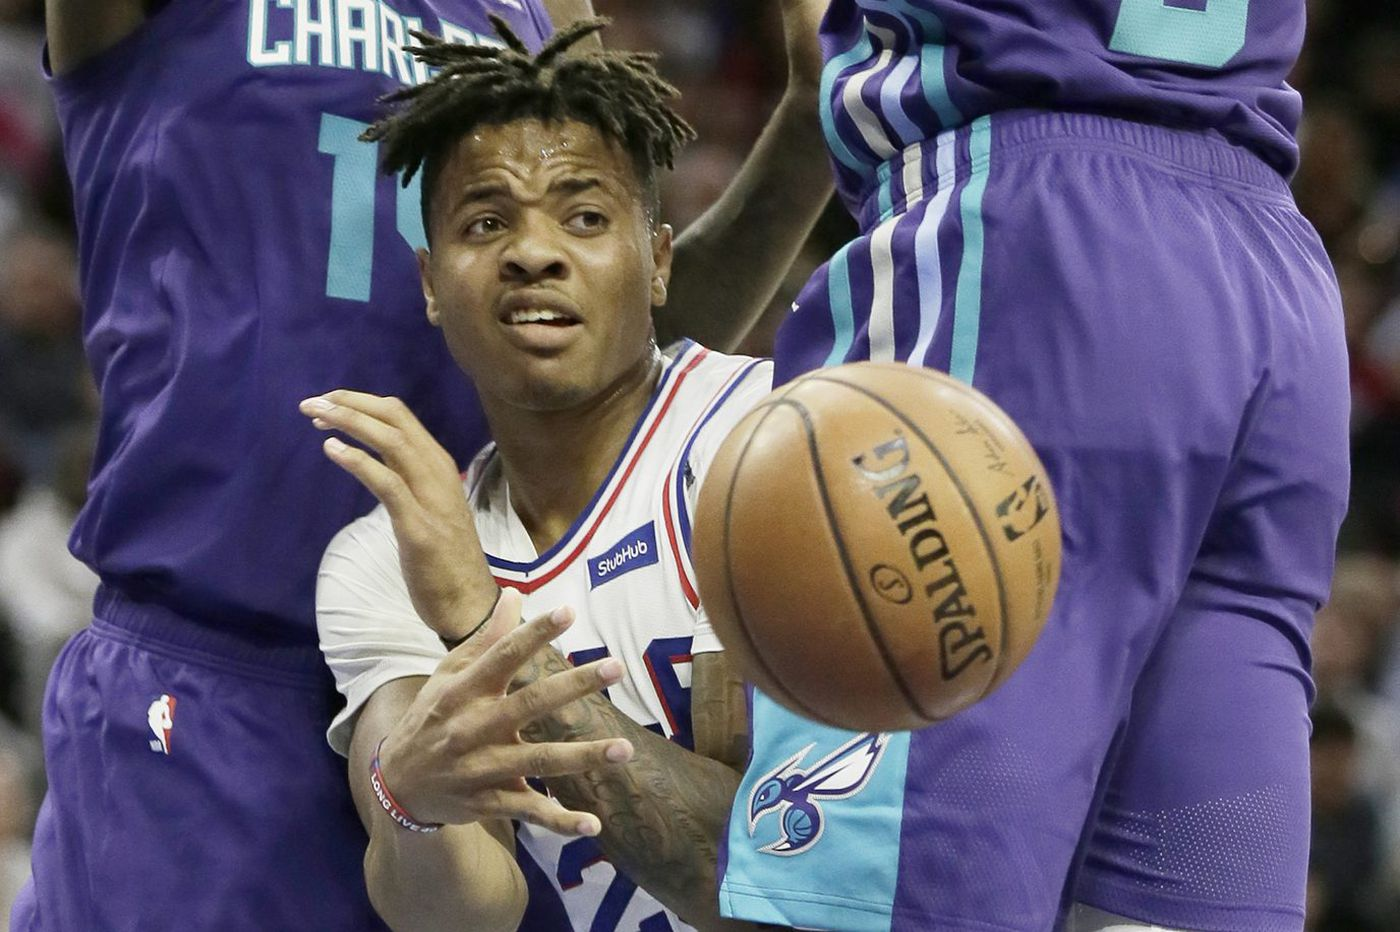 Sixers-Hornets observations: Robert Covington's best game of the season, defense is improving